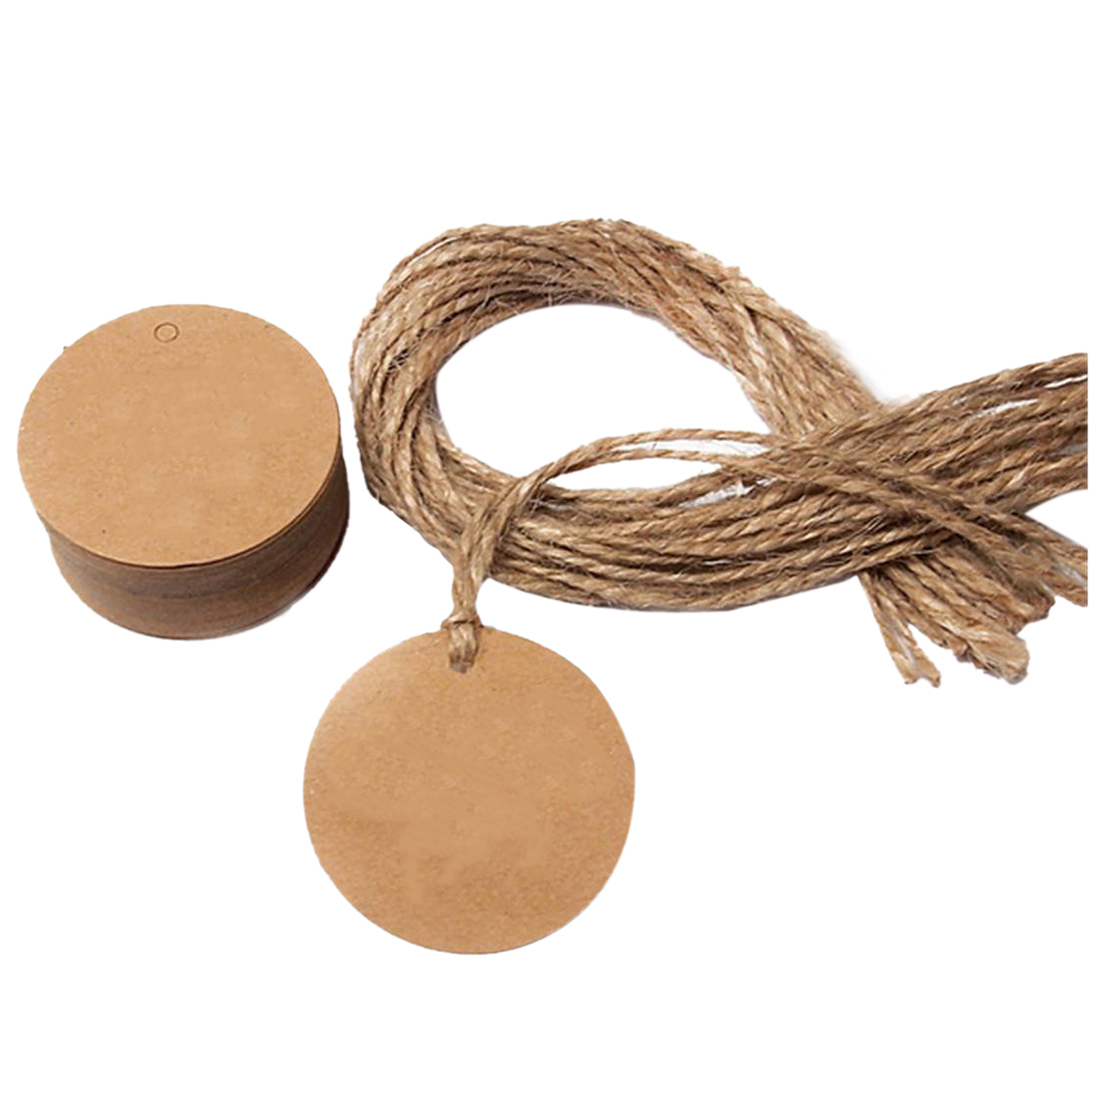 Perfect-50Pcs Round Kraft Gift Tag With Hemp Cord